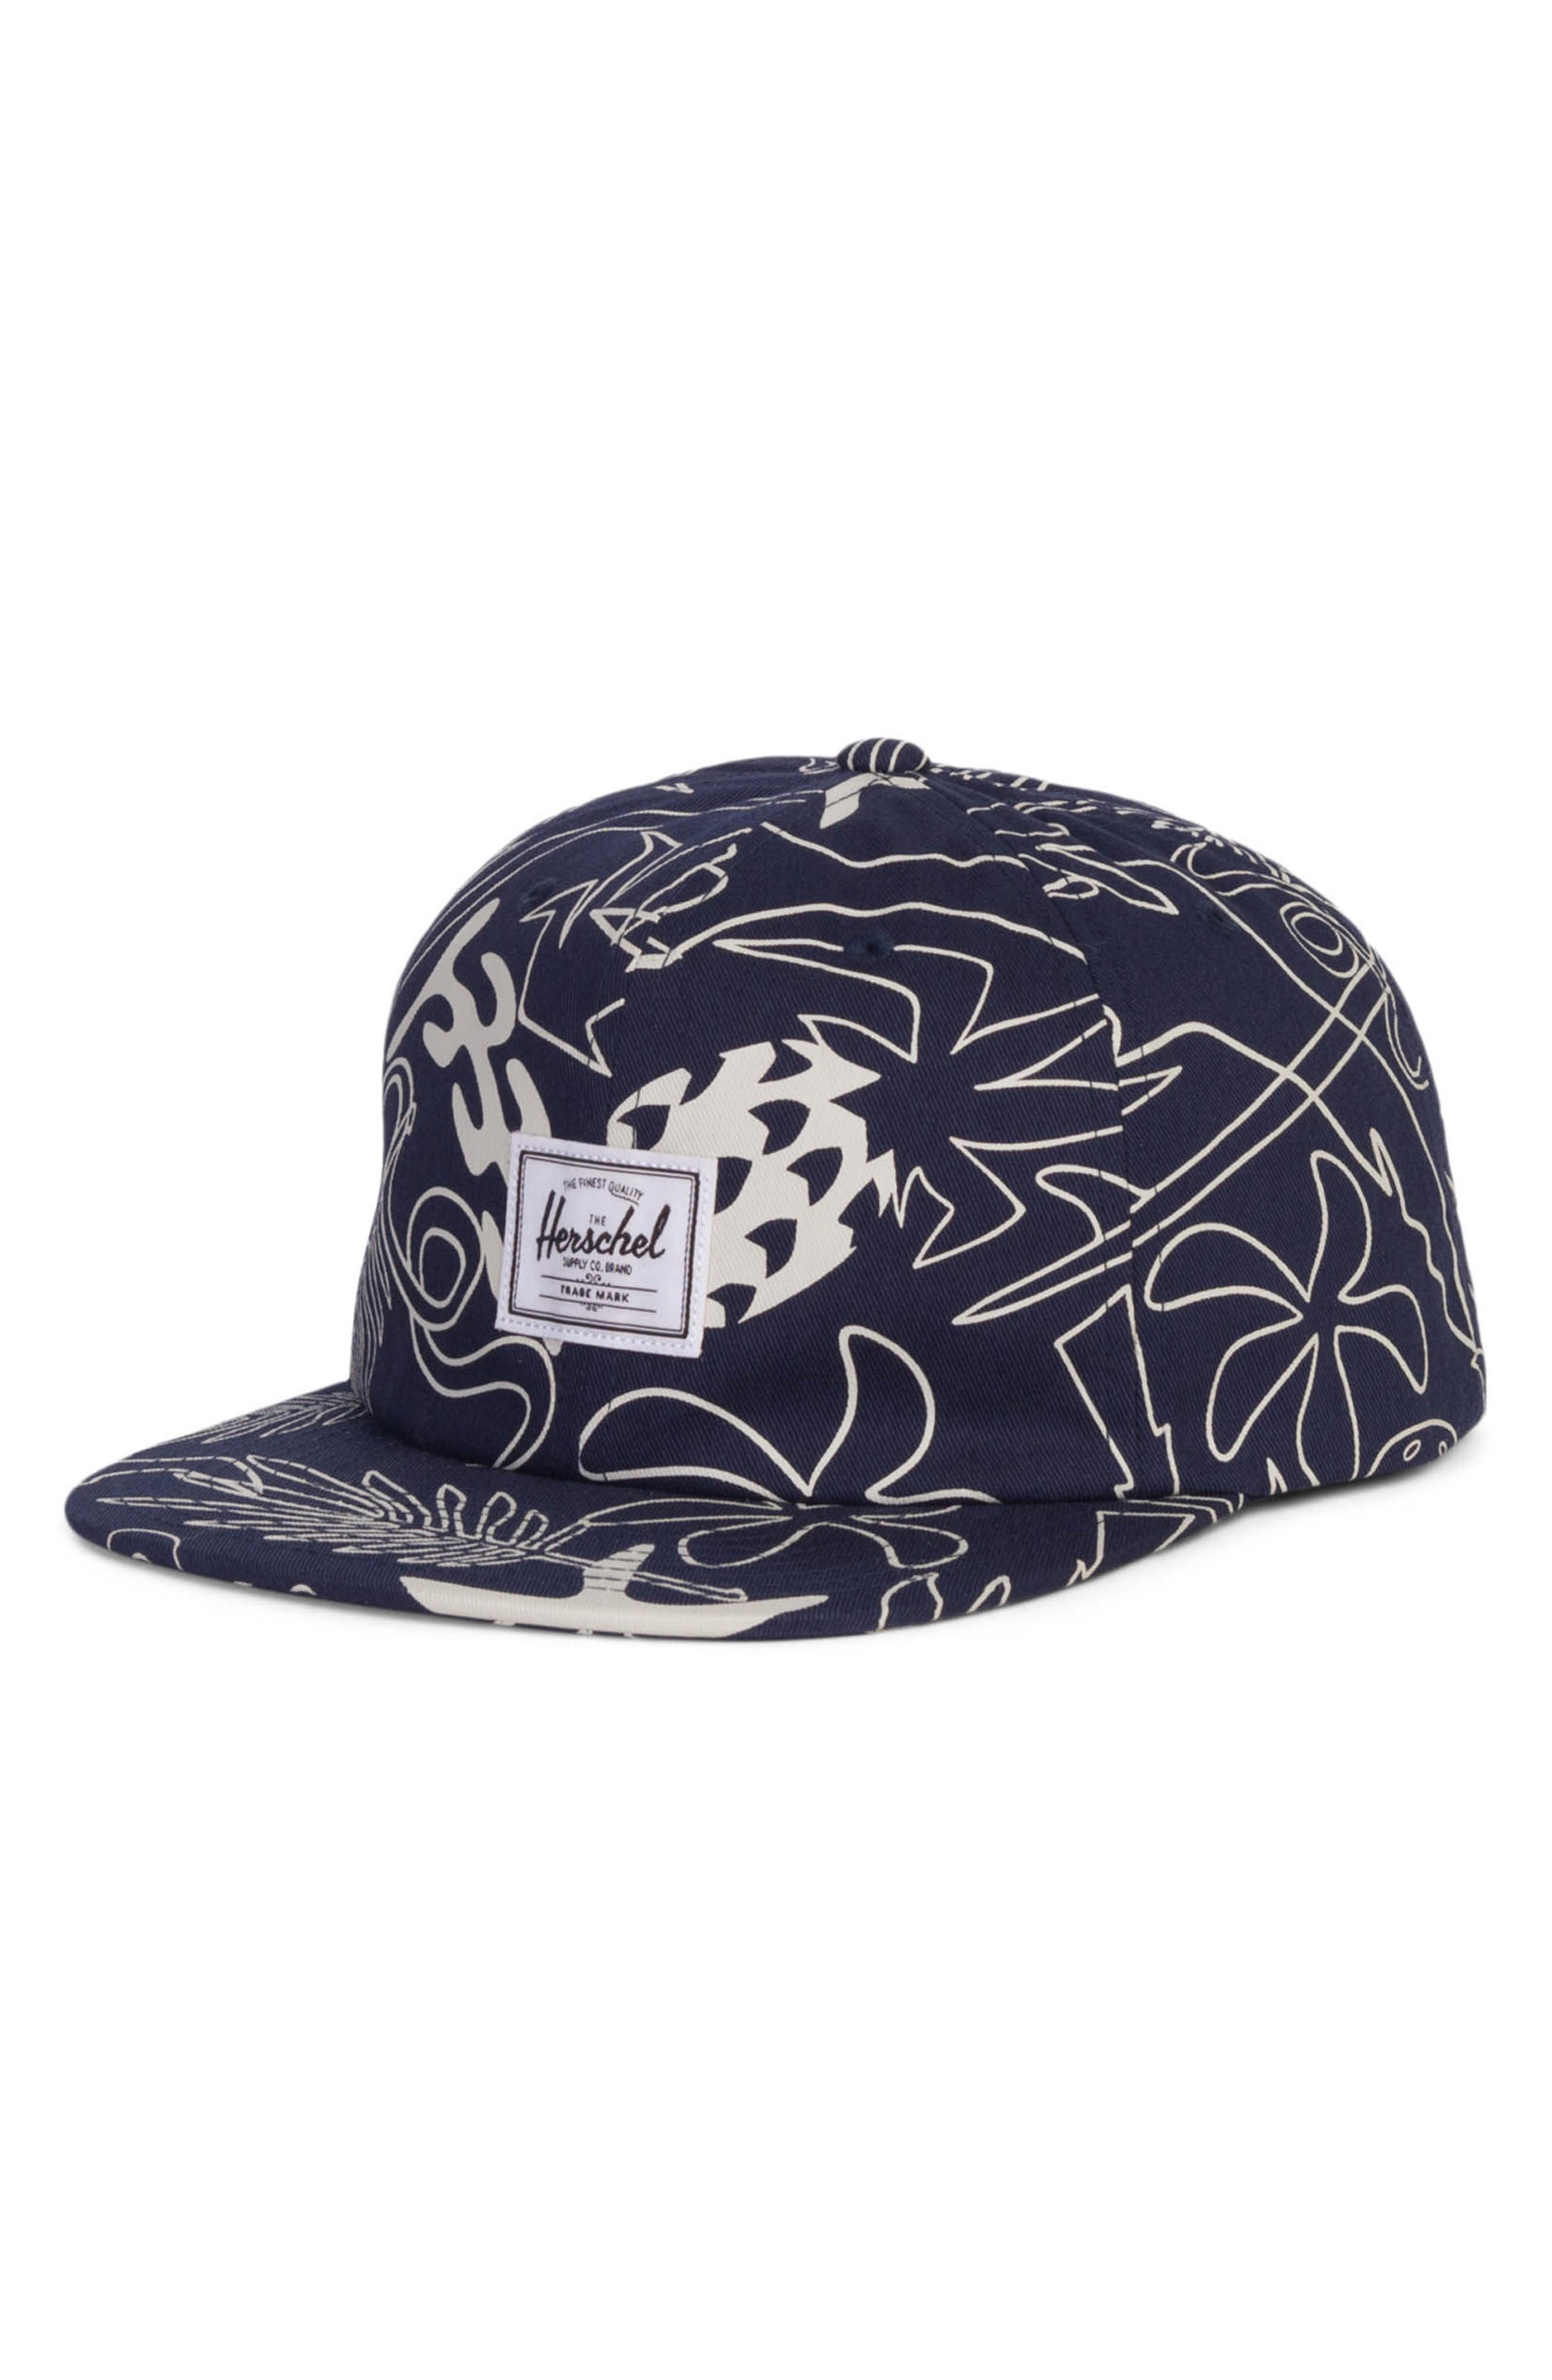 Albert Baseball Cap,                         Main,                         color, Abstract Island